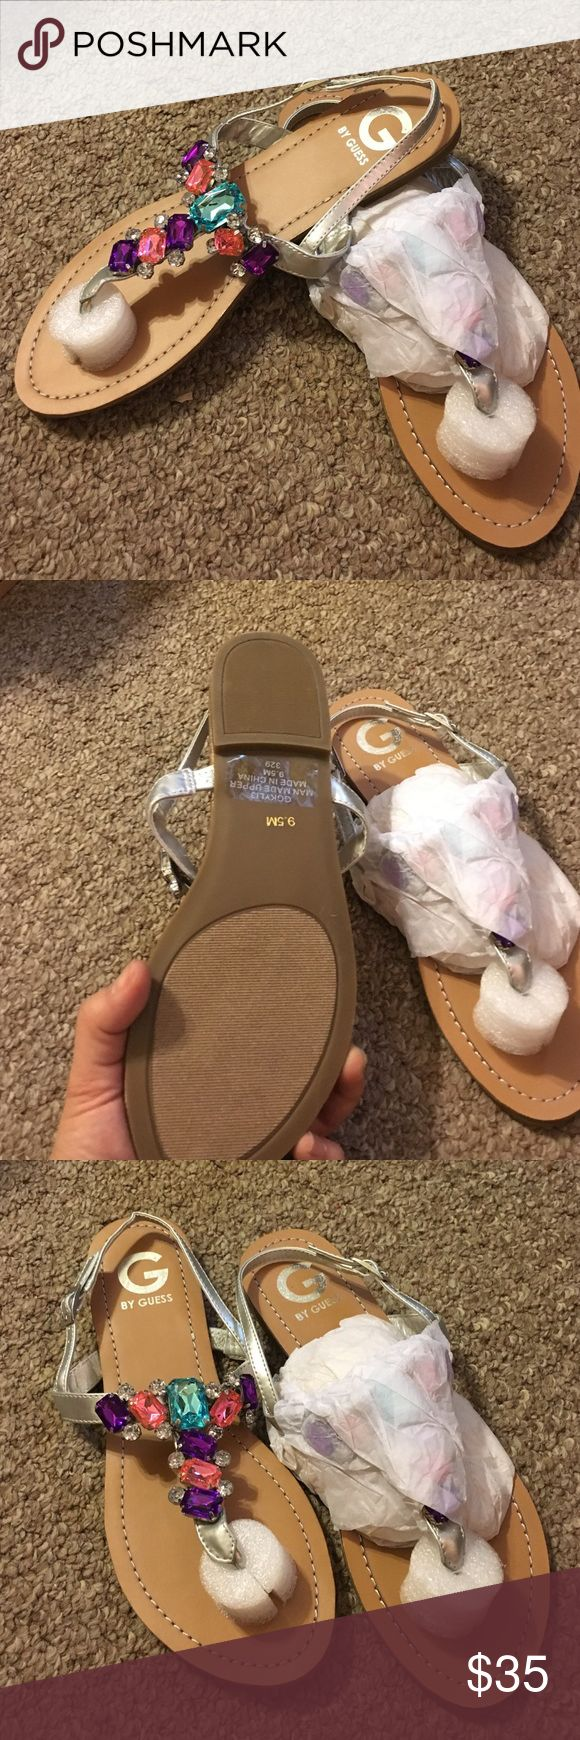 New GG Kyli 3 sandals Silver, flat sandals, multi color rhinestones on top G by Guess Shoes Sandals